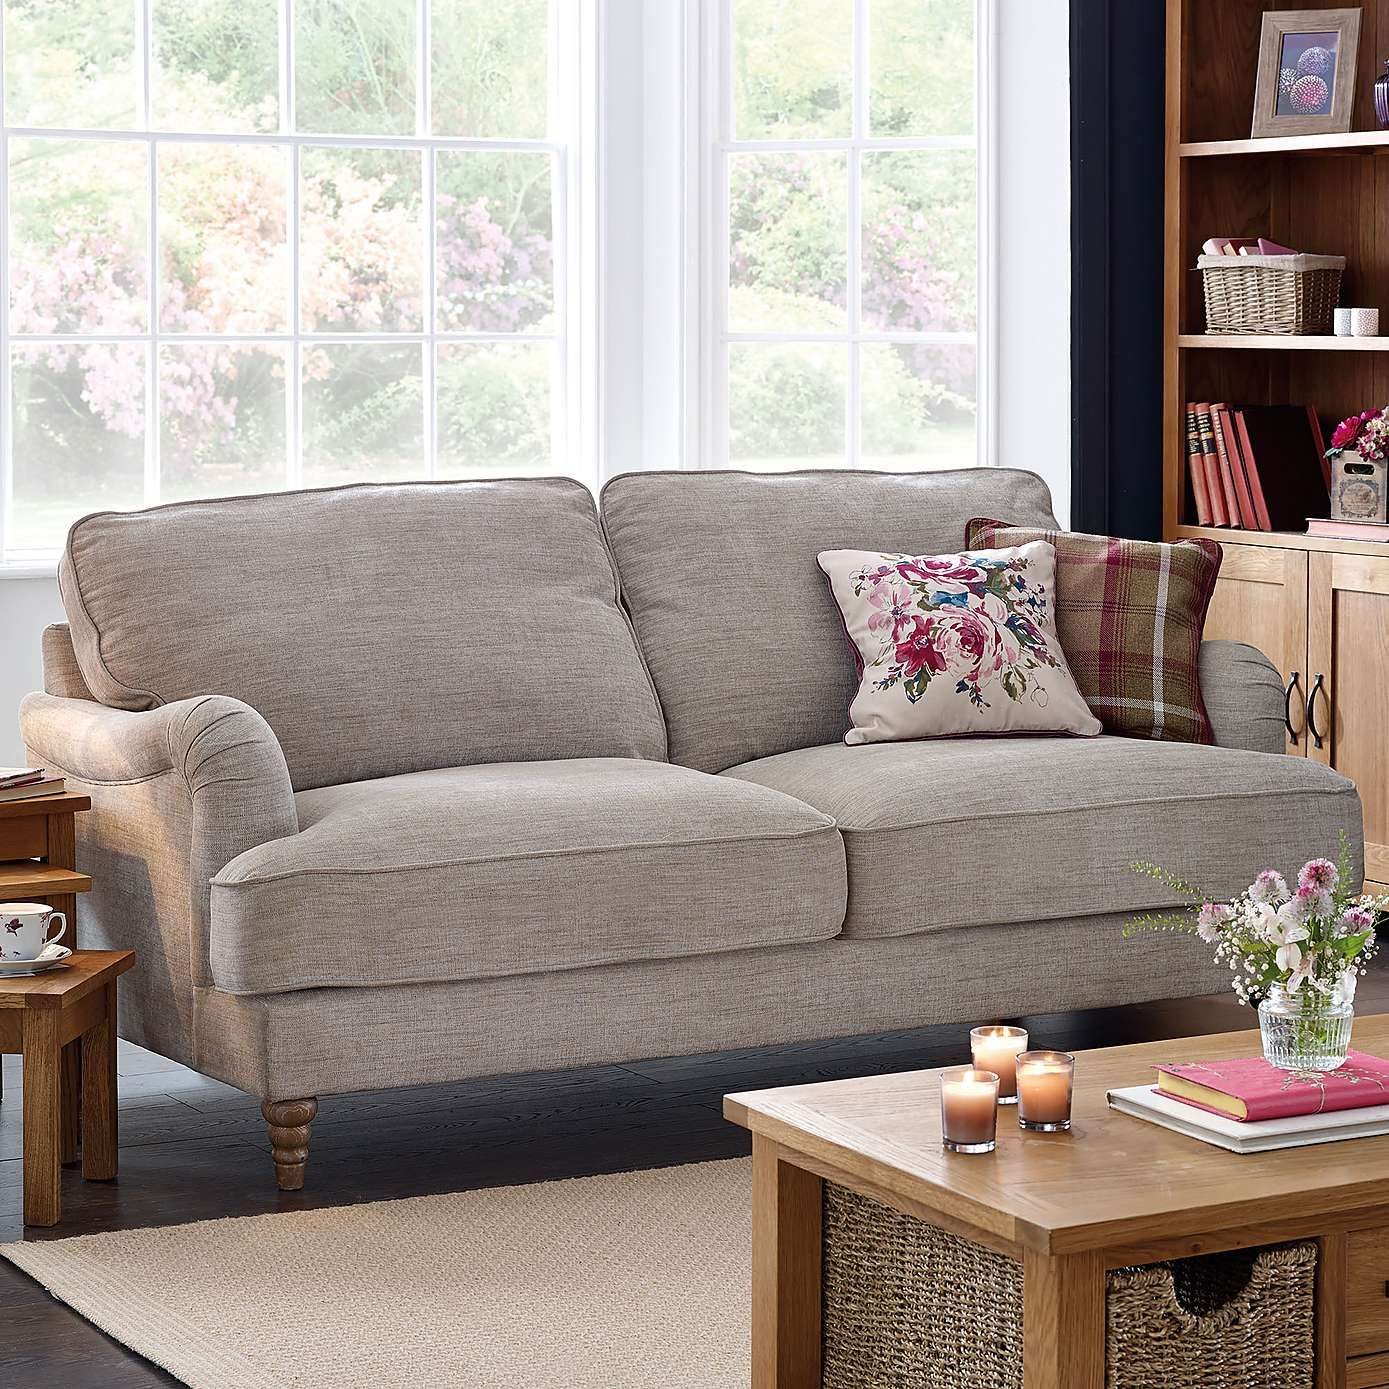 Walton Sofa Collection Dunelm Living room Pinterest